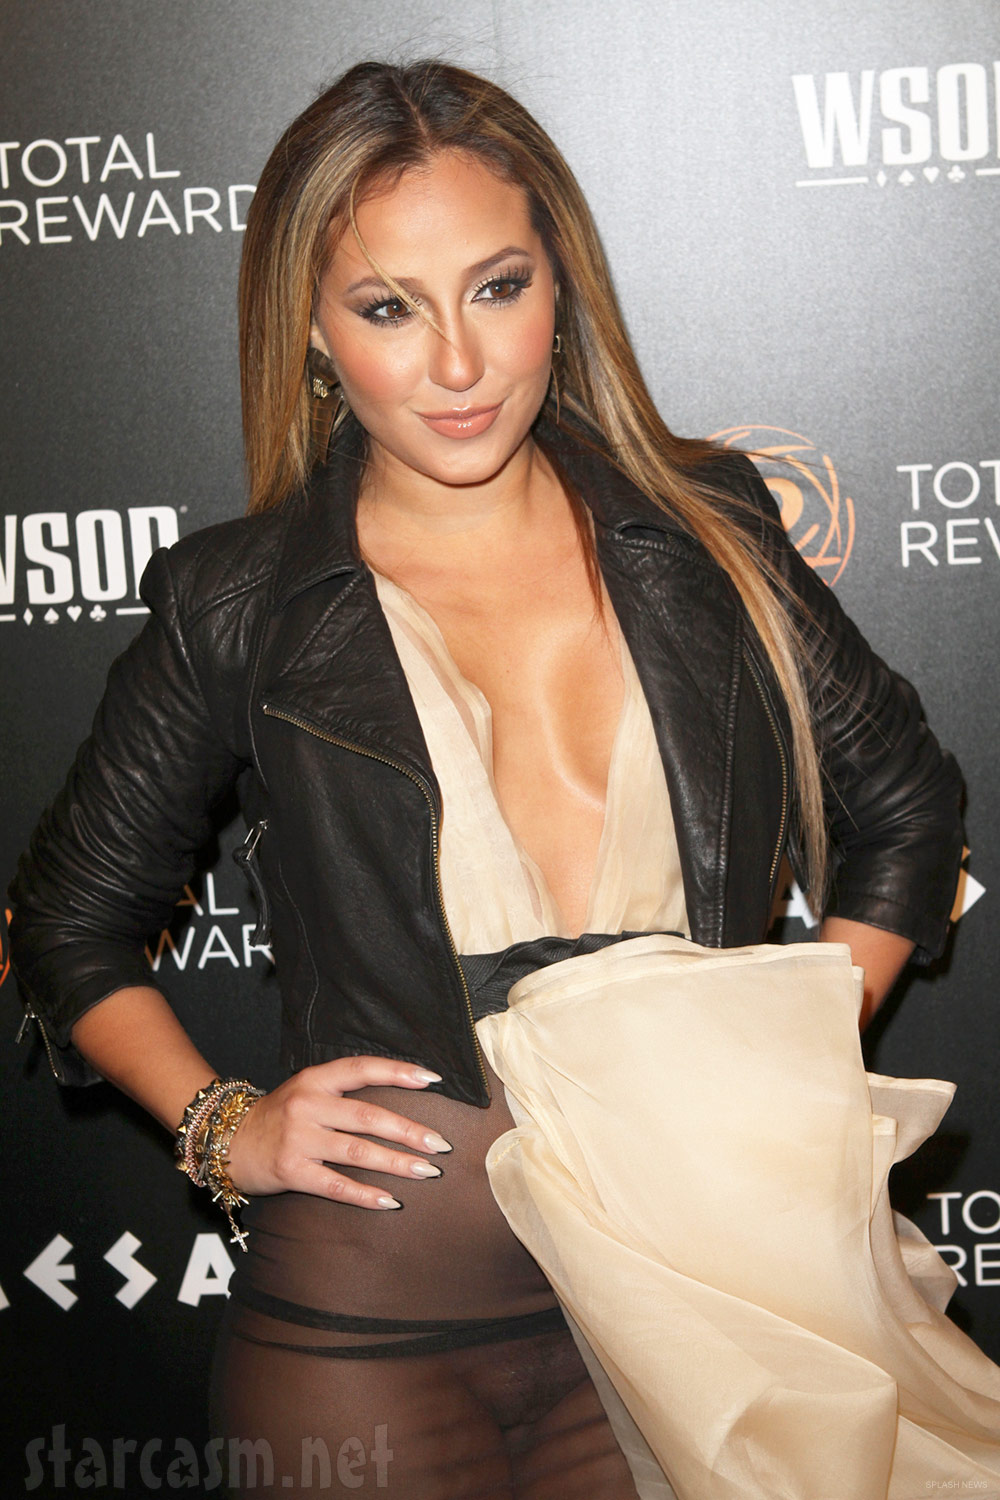 AUTHOR: Asa Hawks ; | Related : Adrienne Bailon , Wardrobe Malfunction